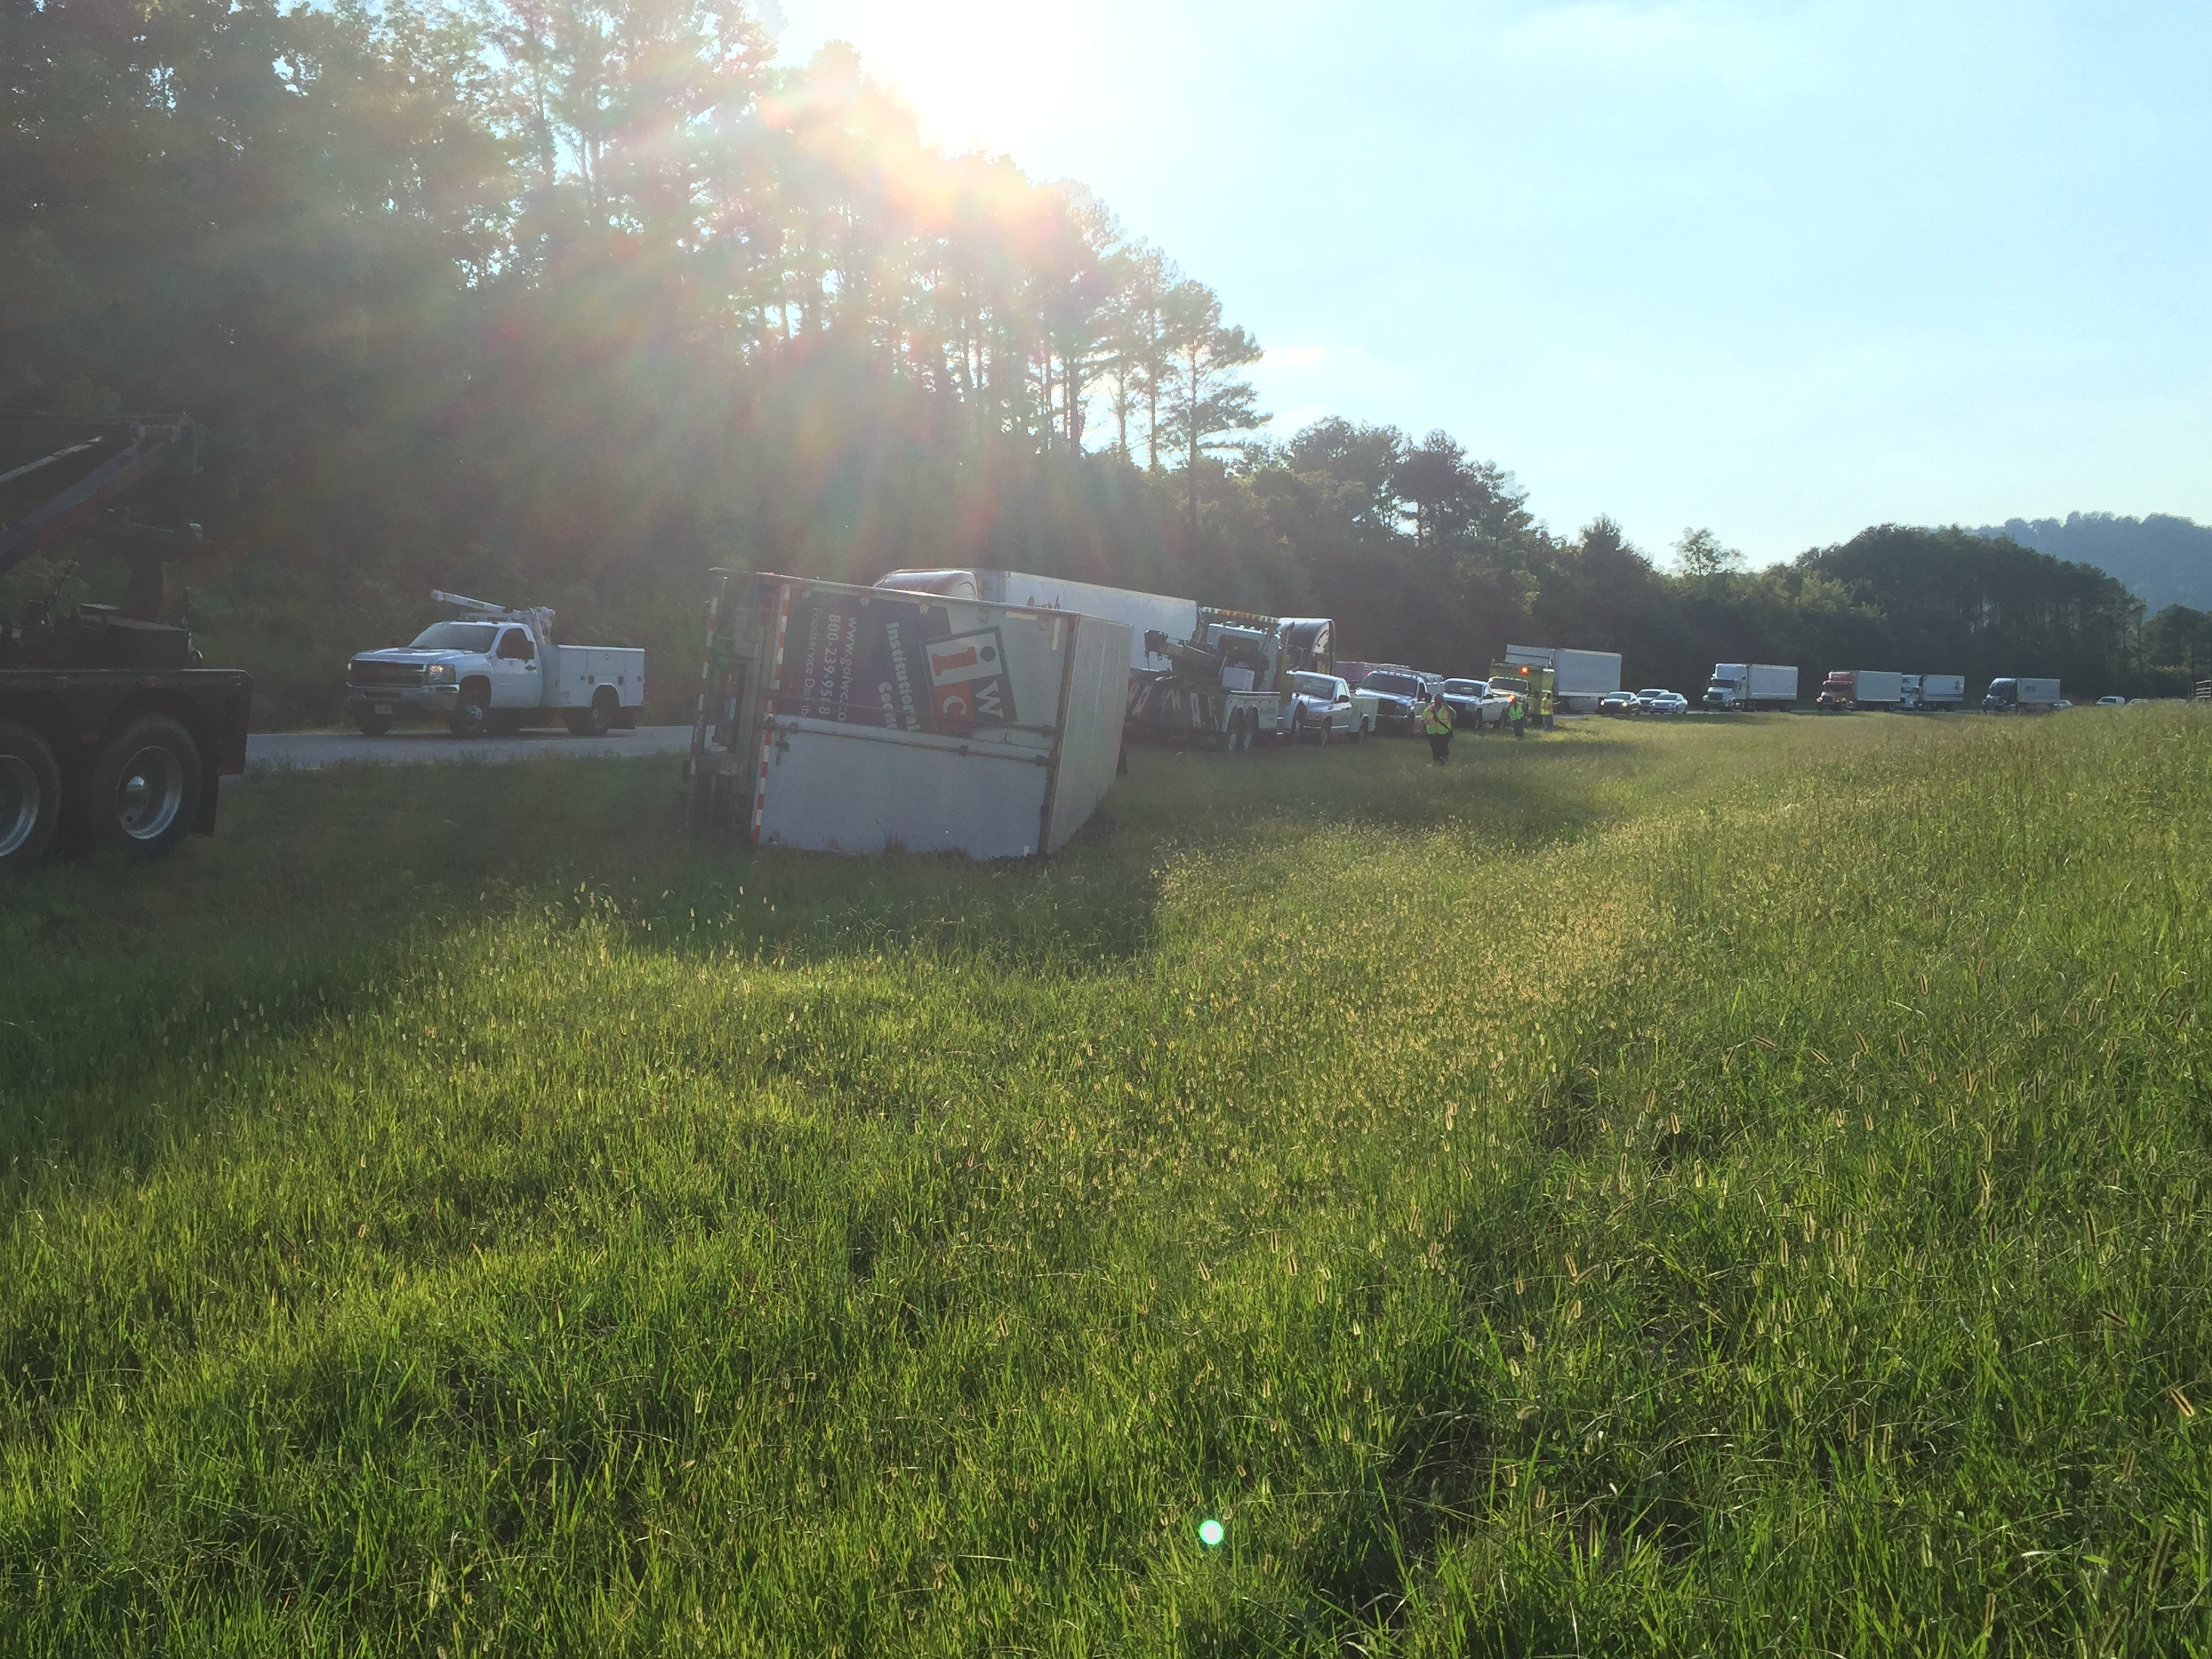 I-40 Shut Down Due to Truck Wreck | Smith County Insider